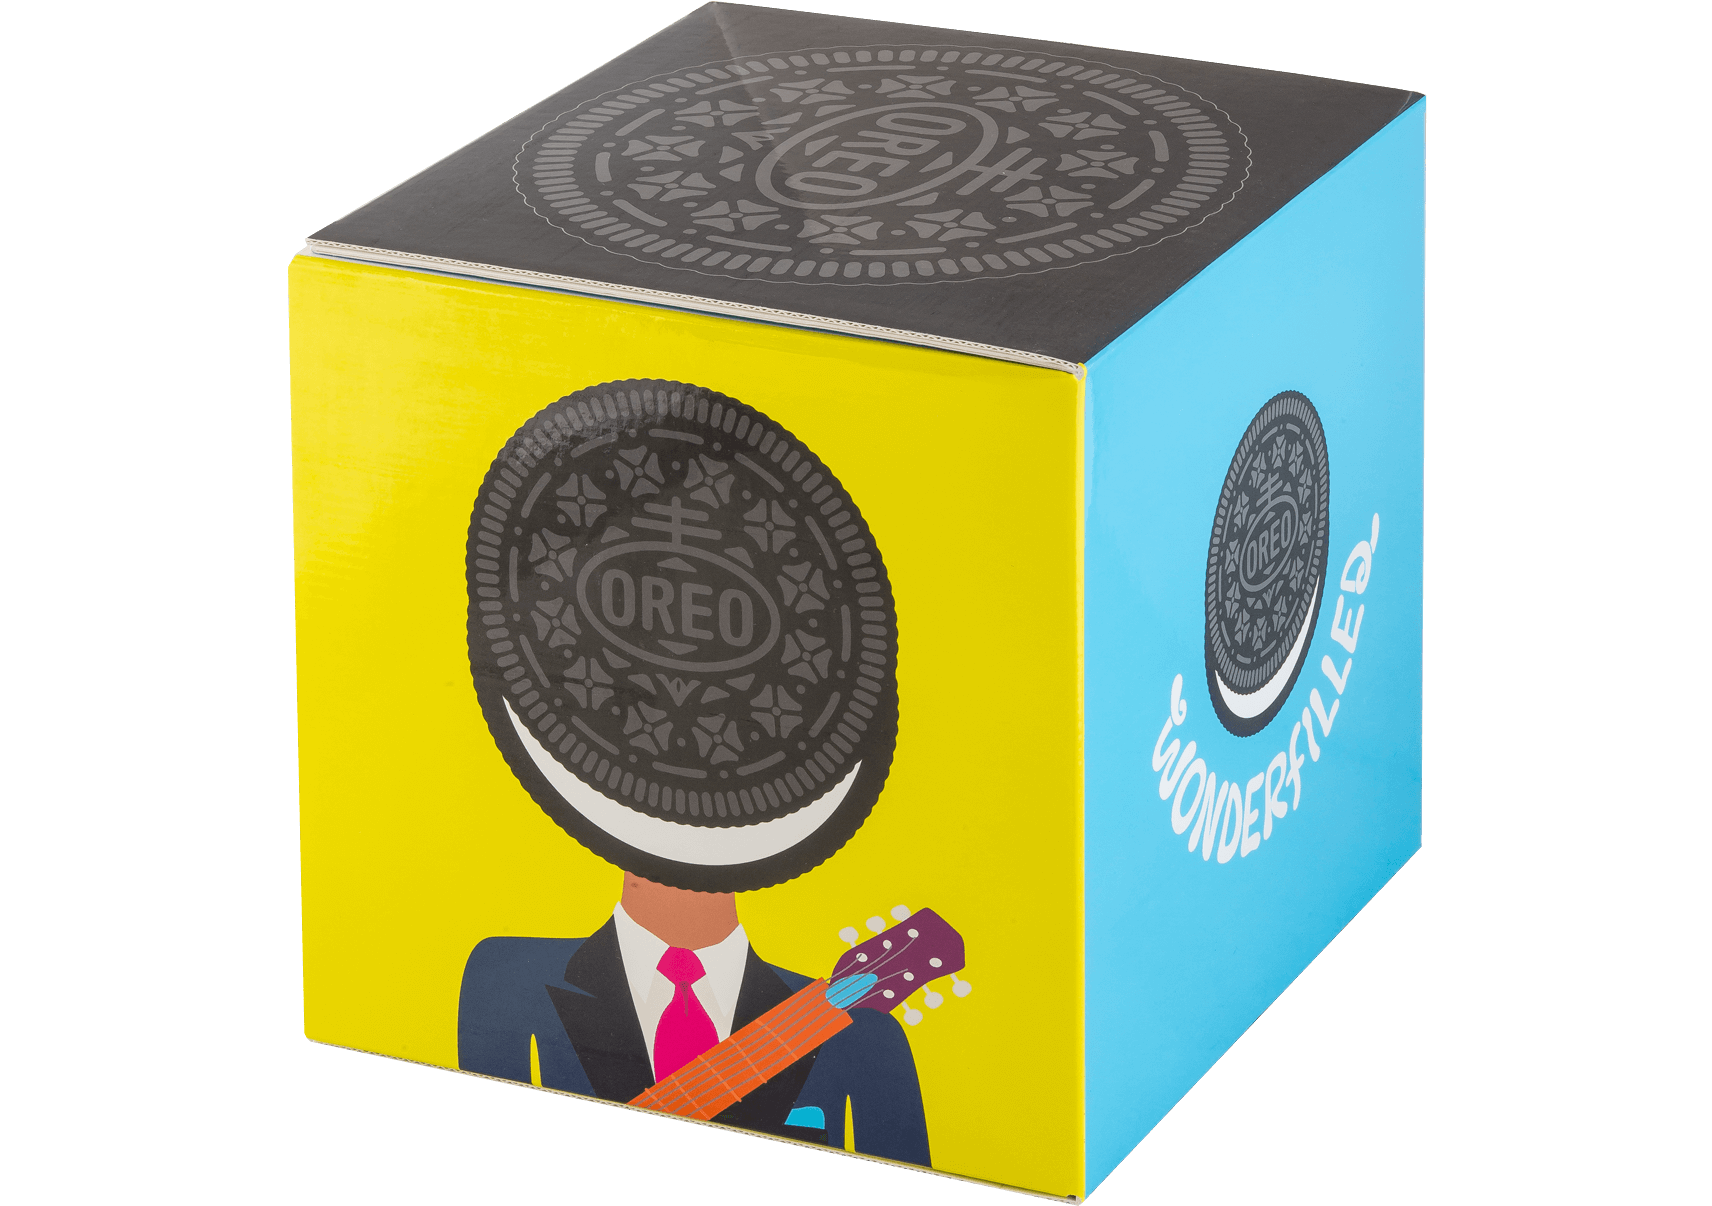 Fourcolor cube mailer featuring. Oreo clipart advertisement